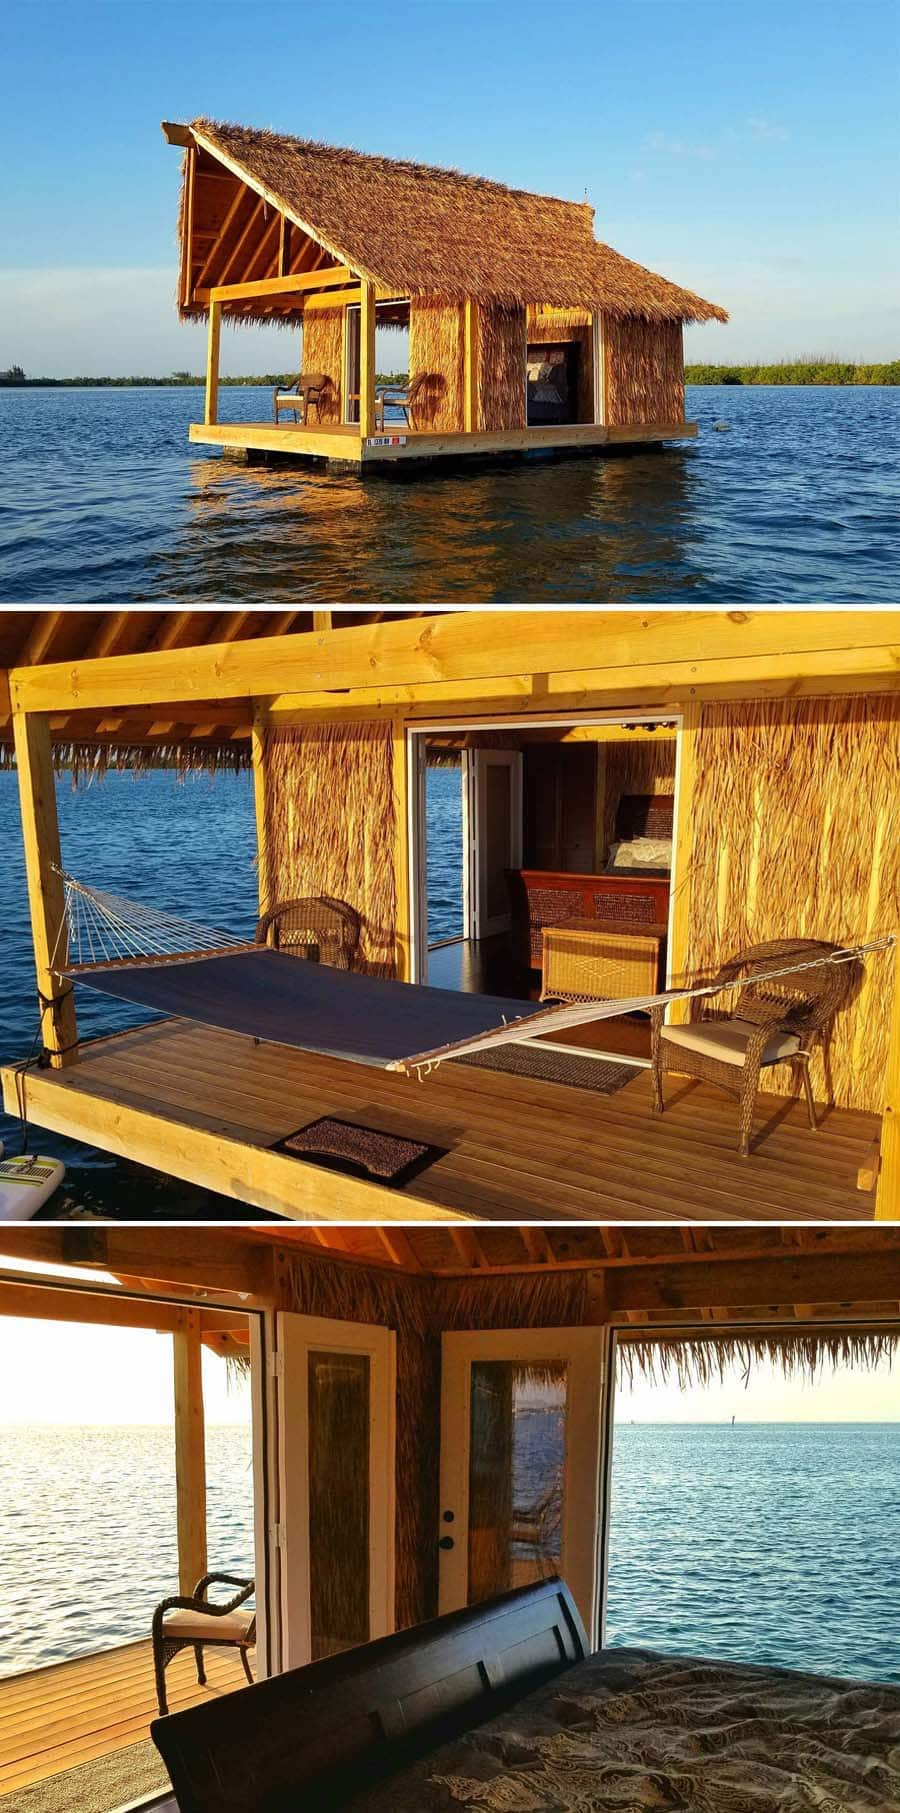 Straw tiki airbnb on the water in Key West, Florida